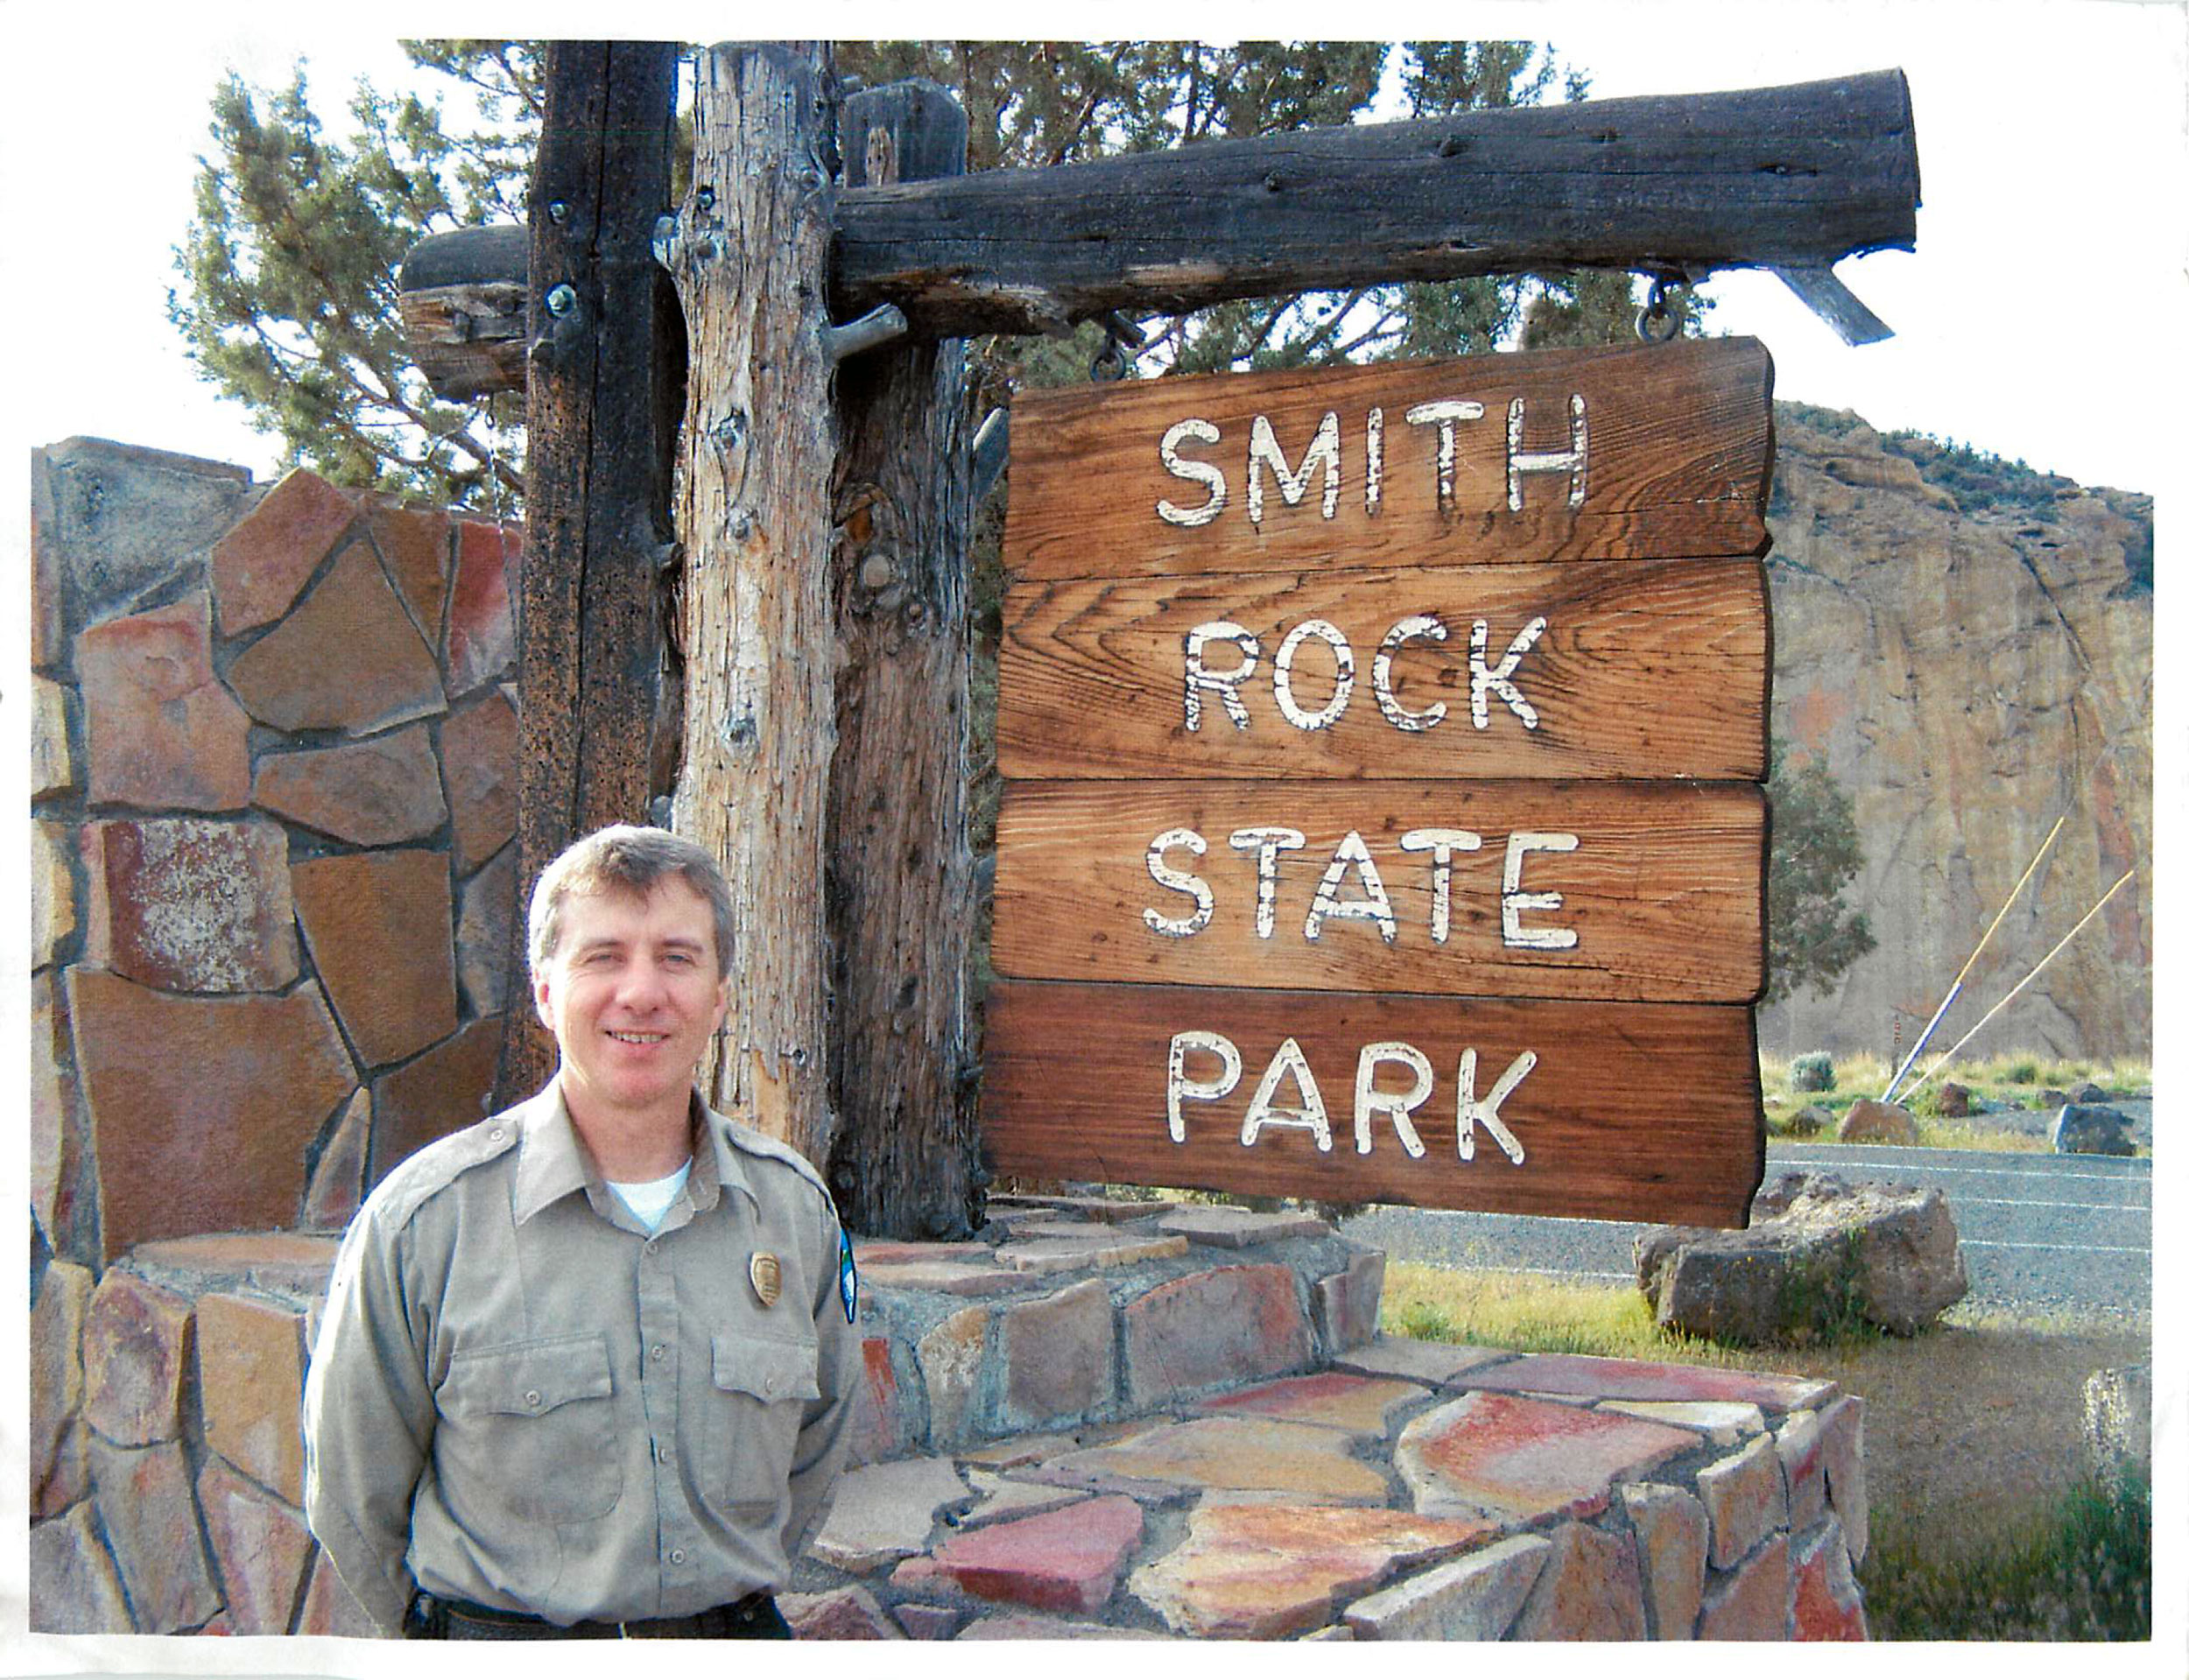 Smith Rock State Park Manager Scott Brown in his first days at the park